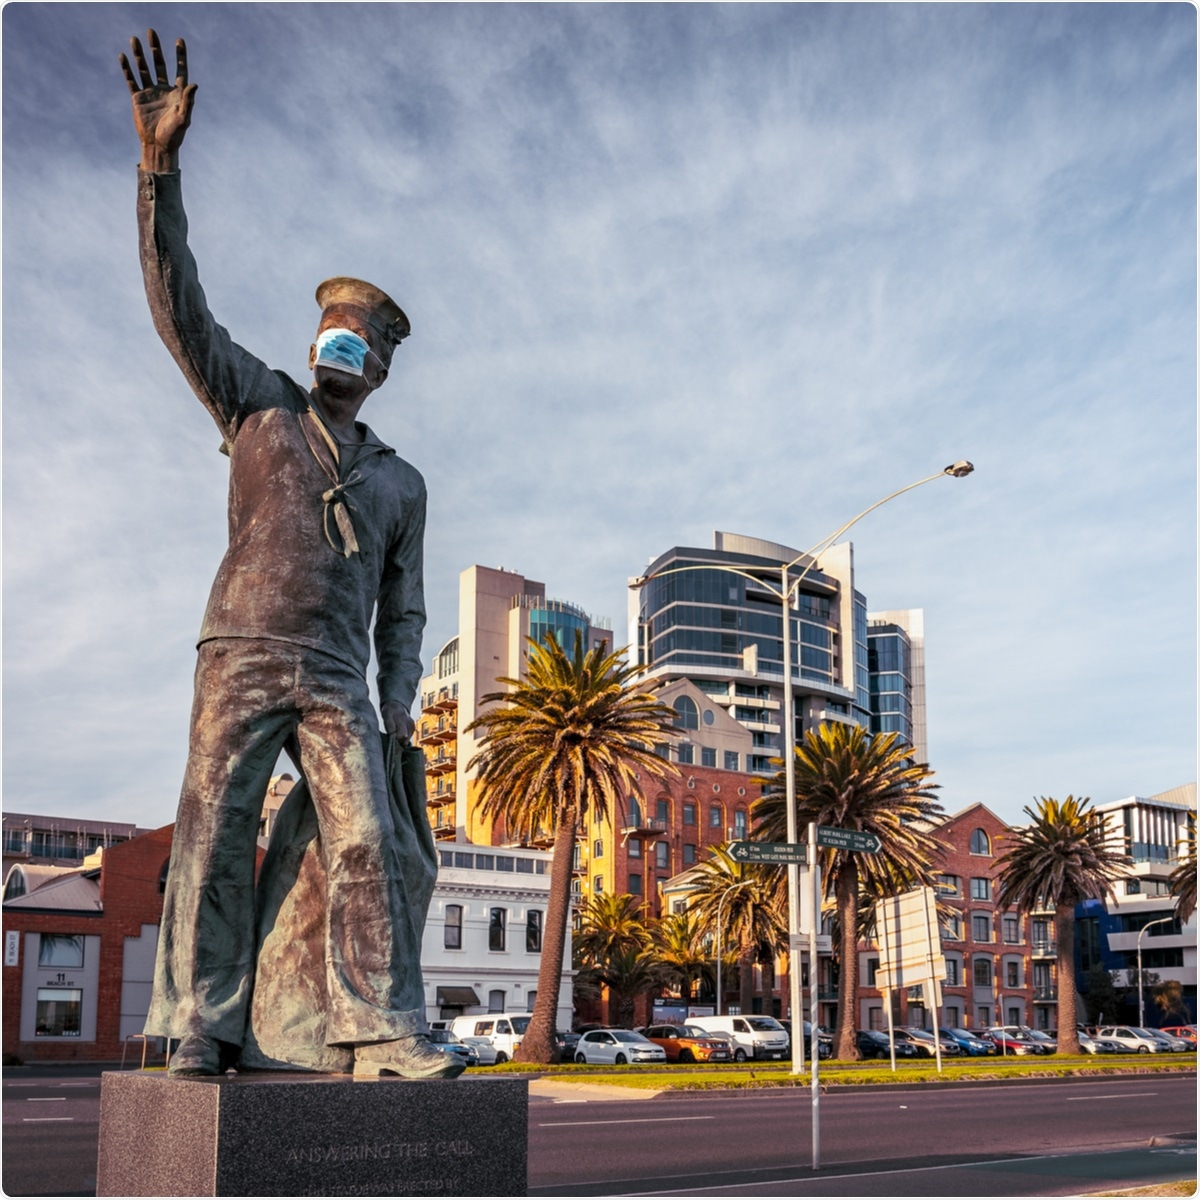 Melbourne, Australia - Jul 24, 2020: Statue in Port Melbourne with face mask on put on by pranksters, Melbourne VIC, Australia. Image Credit: Alex Cimbal / Shutterstock